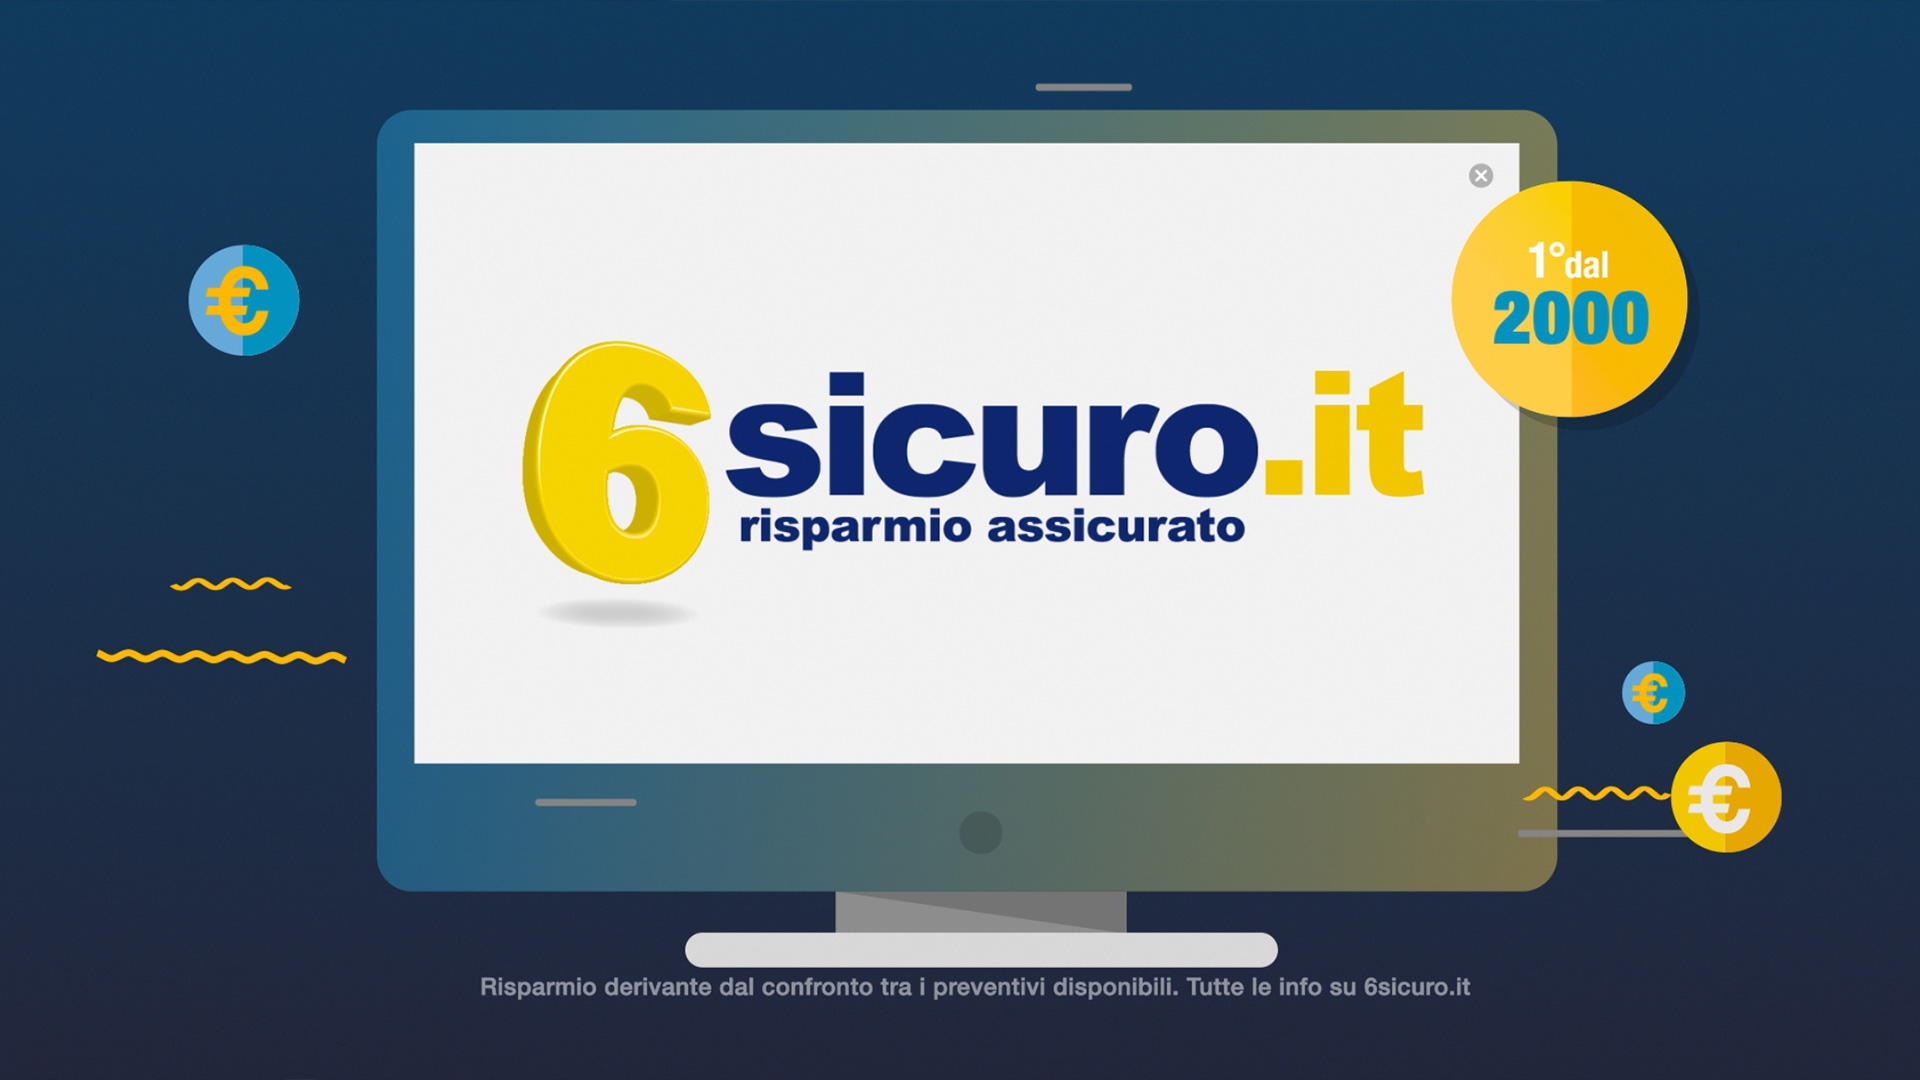 Monkey Talkie per 6sicuro.it - Spot TV - Commercial - Film - Produzione video - Spot per il web